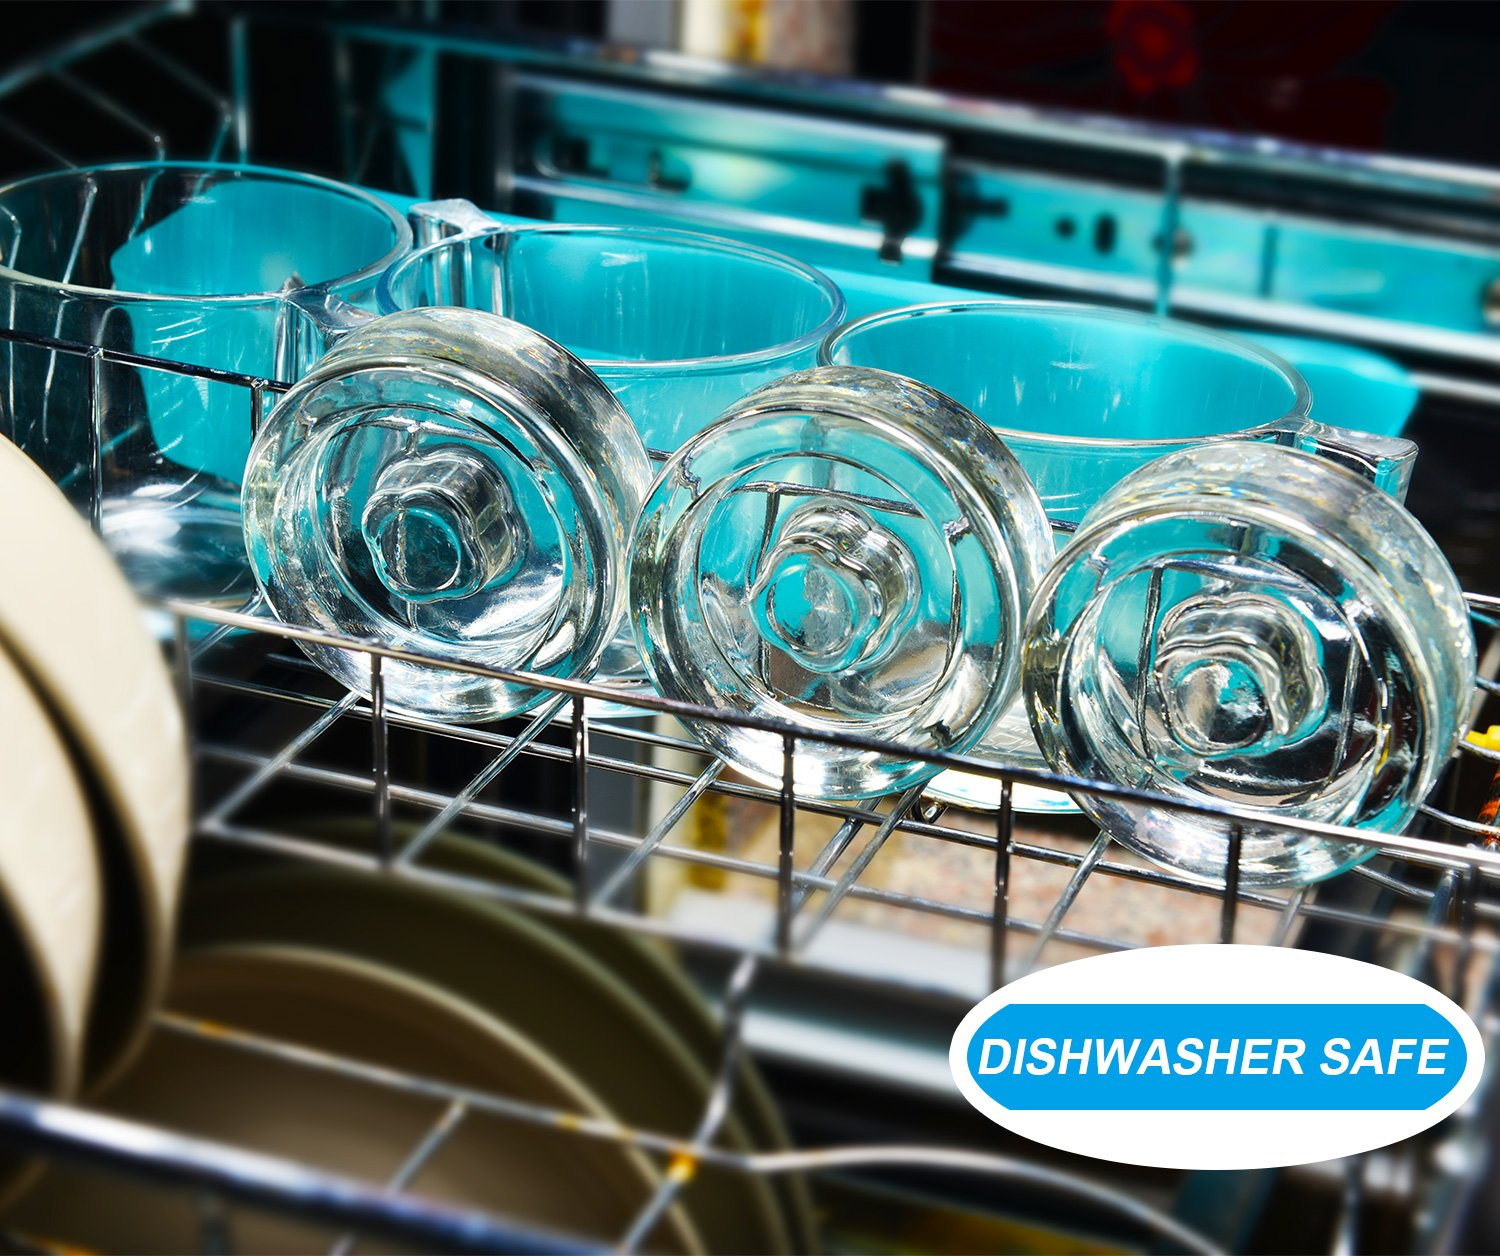 6-Pack Easy Fermentation Glass Weights with Handles for Keeping Vegetables Submerged During Fermenting and Pickling, Fits for Any Wide Mouth Mason Jars, FDA-Apporved Food Grade Materials by Siliware (Image #6)